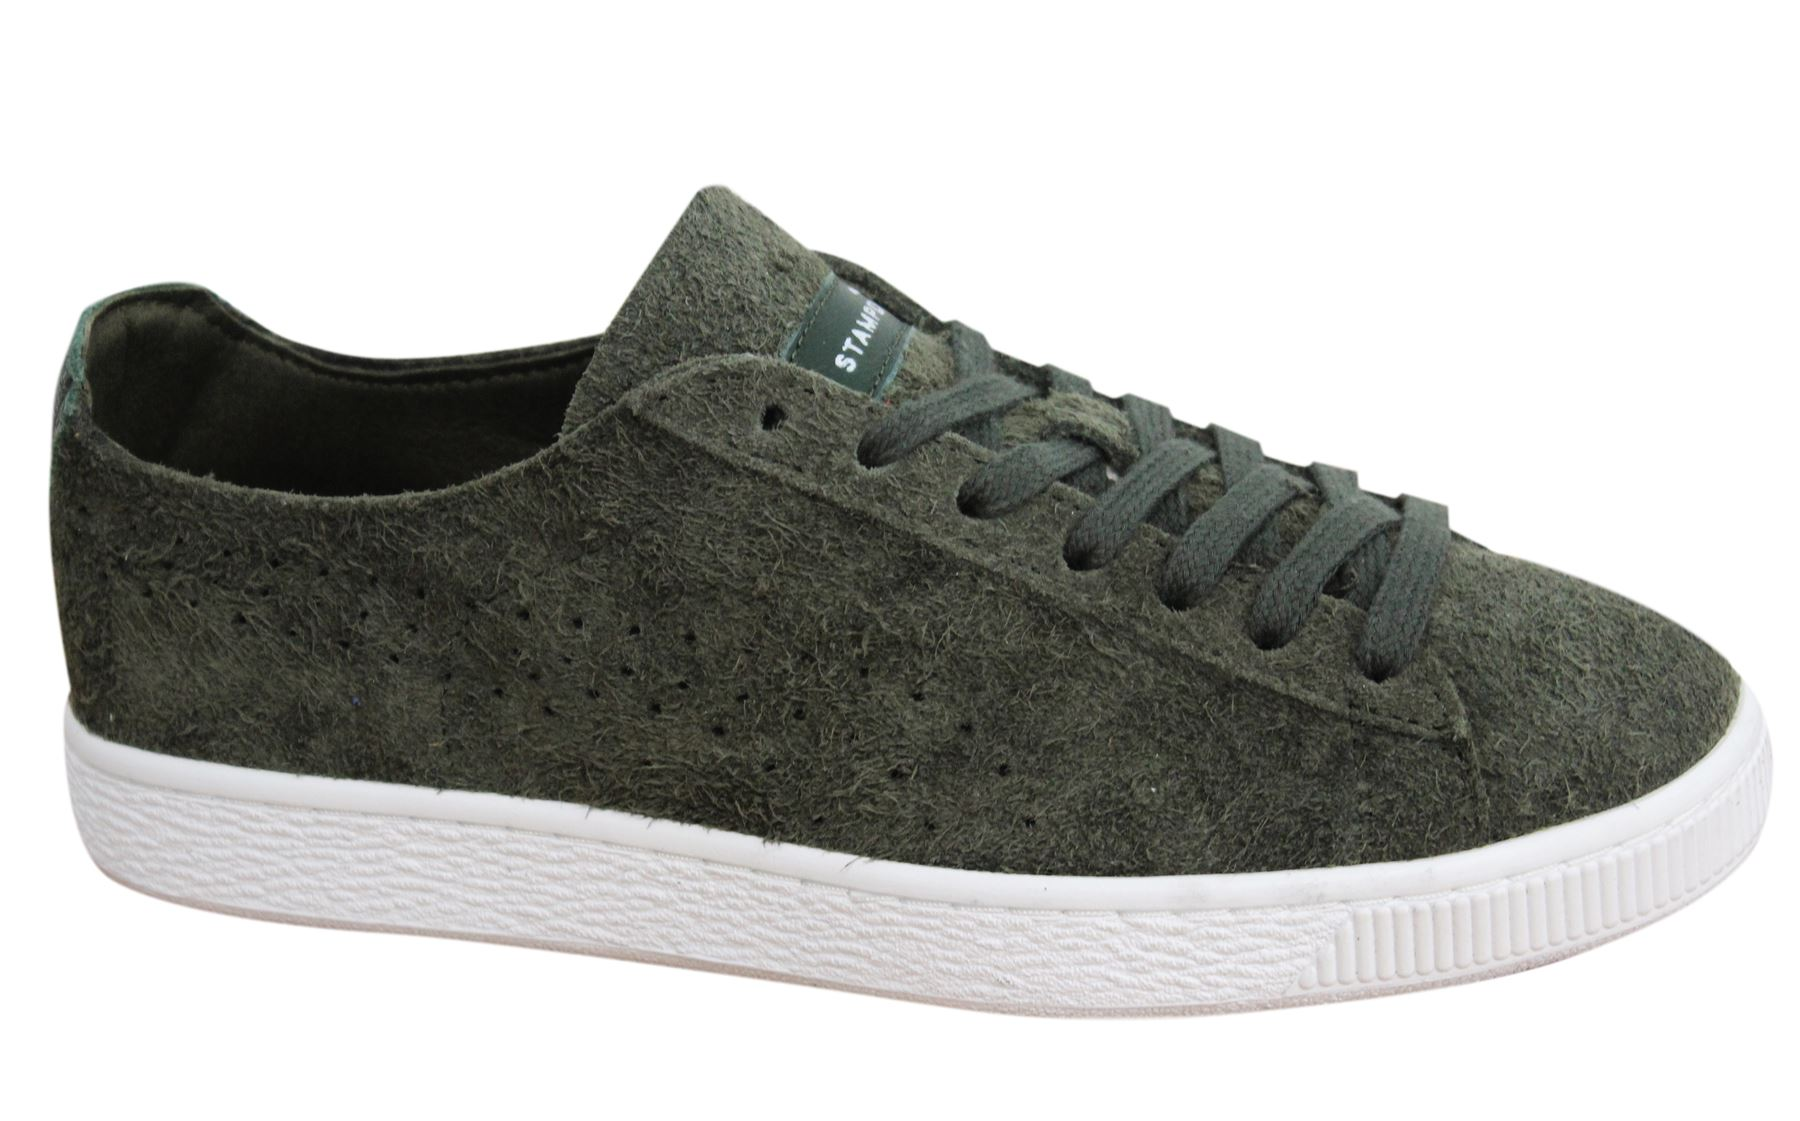 074d6b52413 Puma States x Stampd Lace Up Forest Night Mens Leather Trainers 361491 01  D11